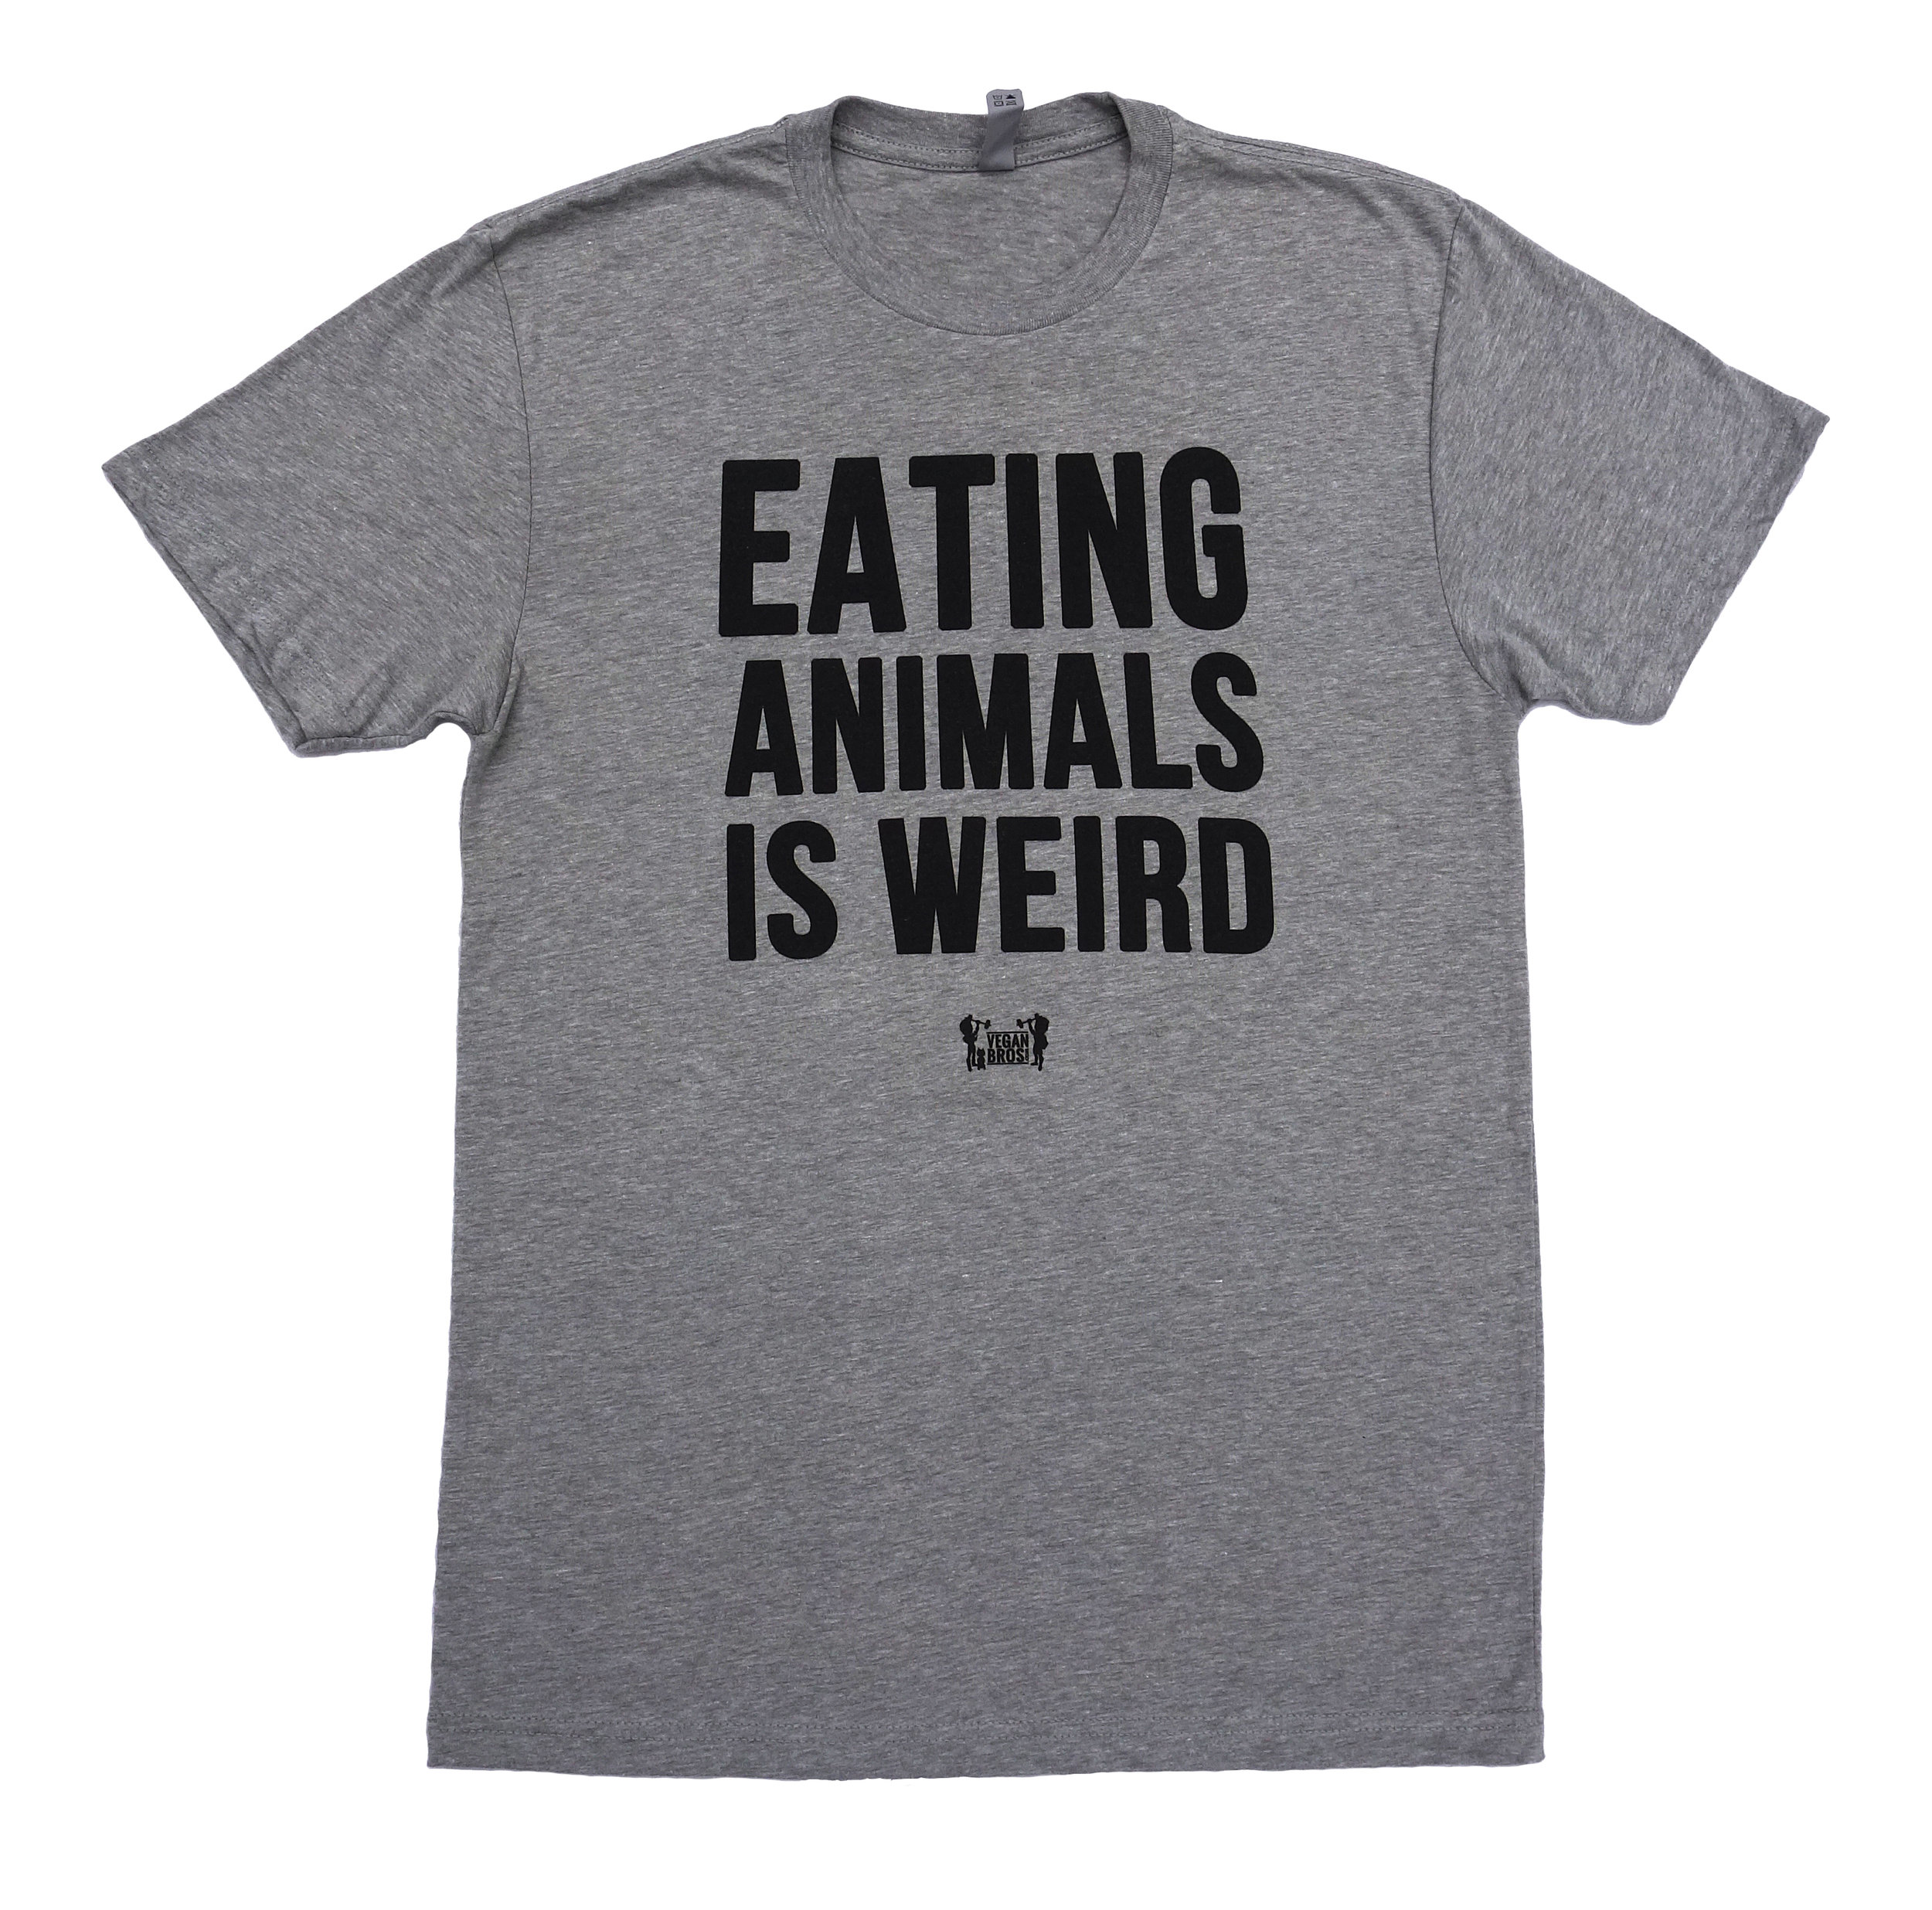 'Eating Animals Is Weird' <br>by Vegan Bros